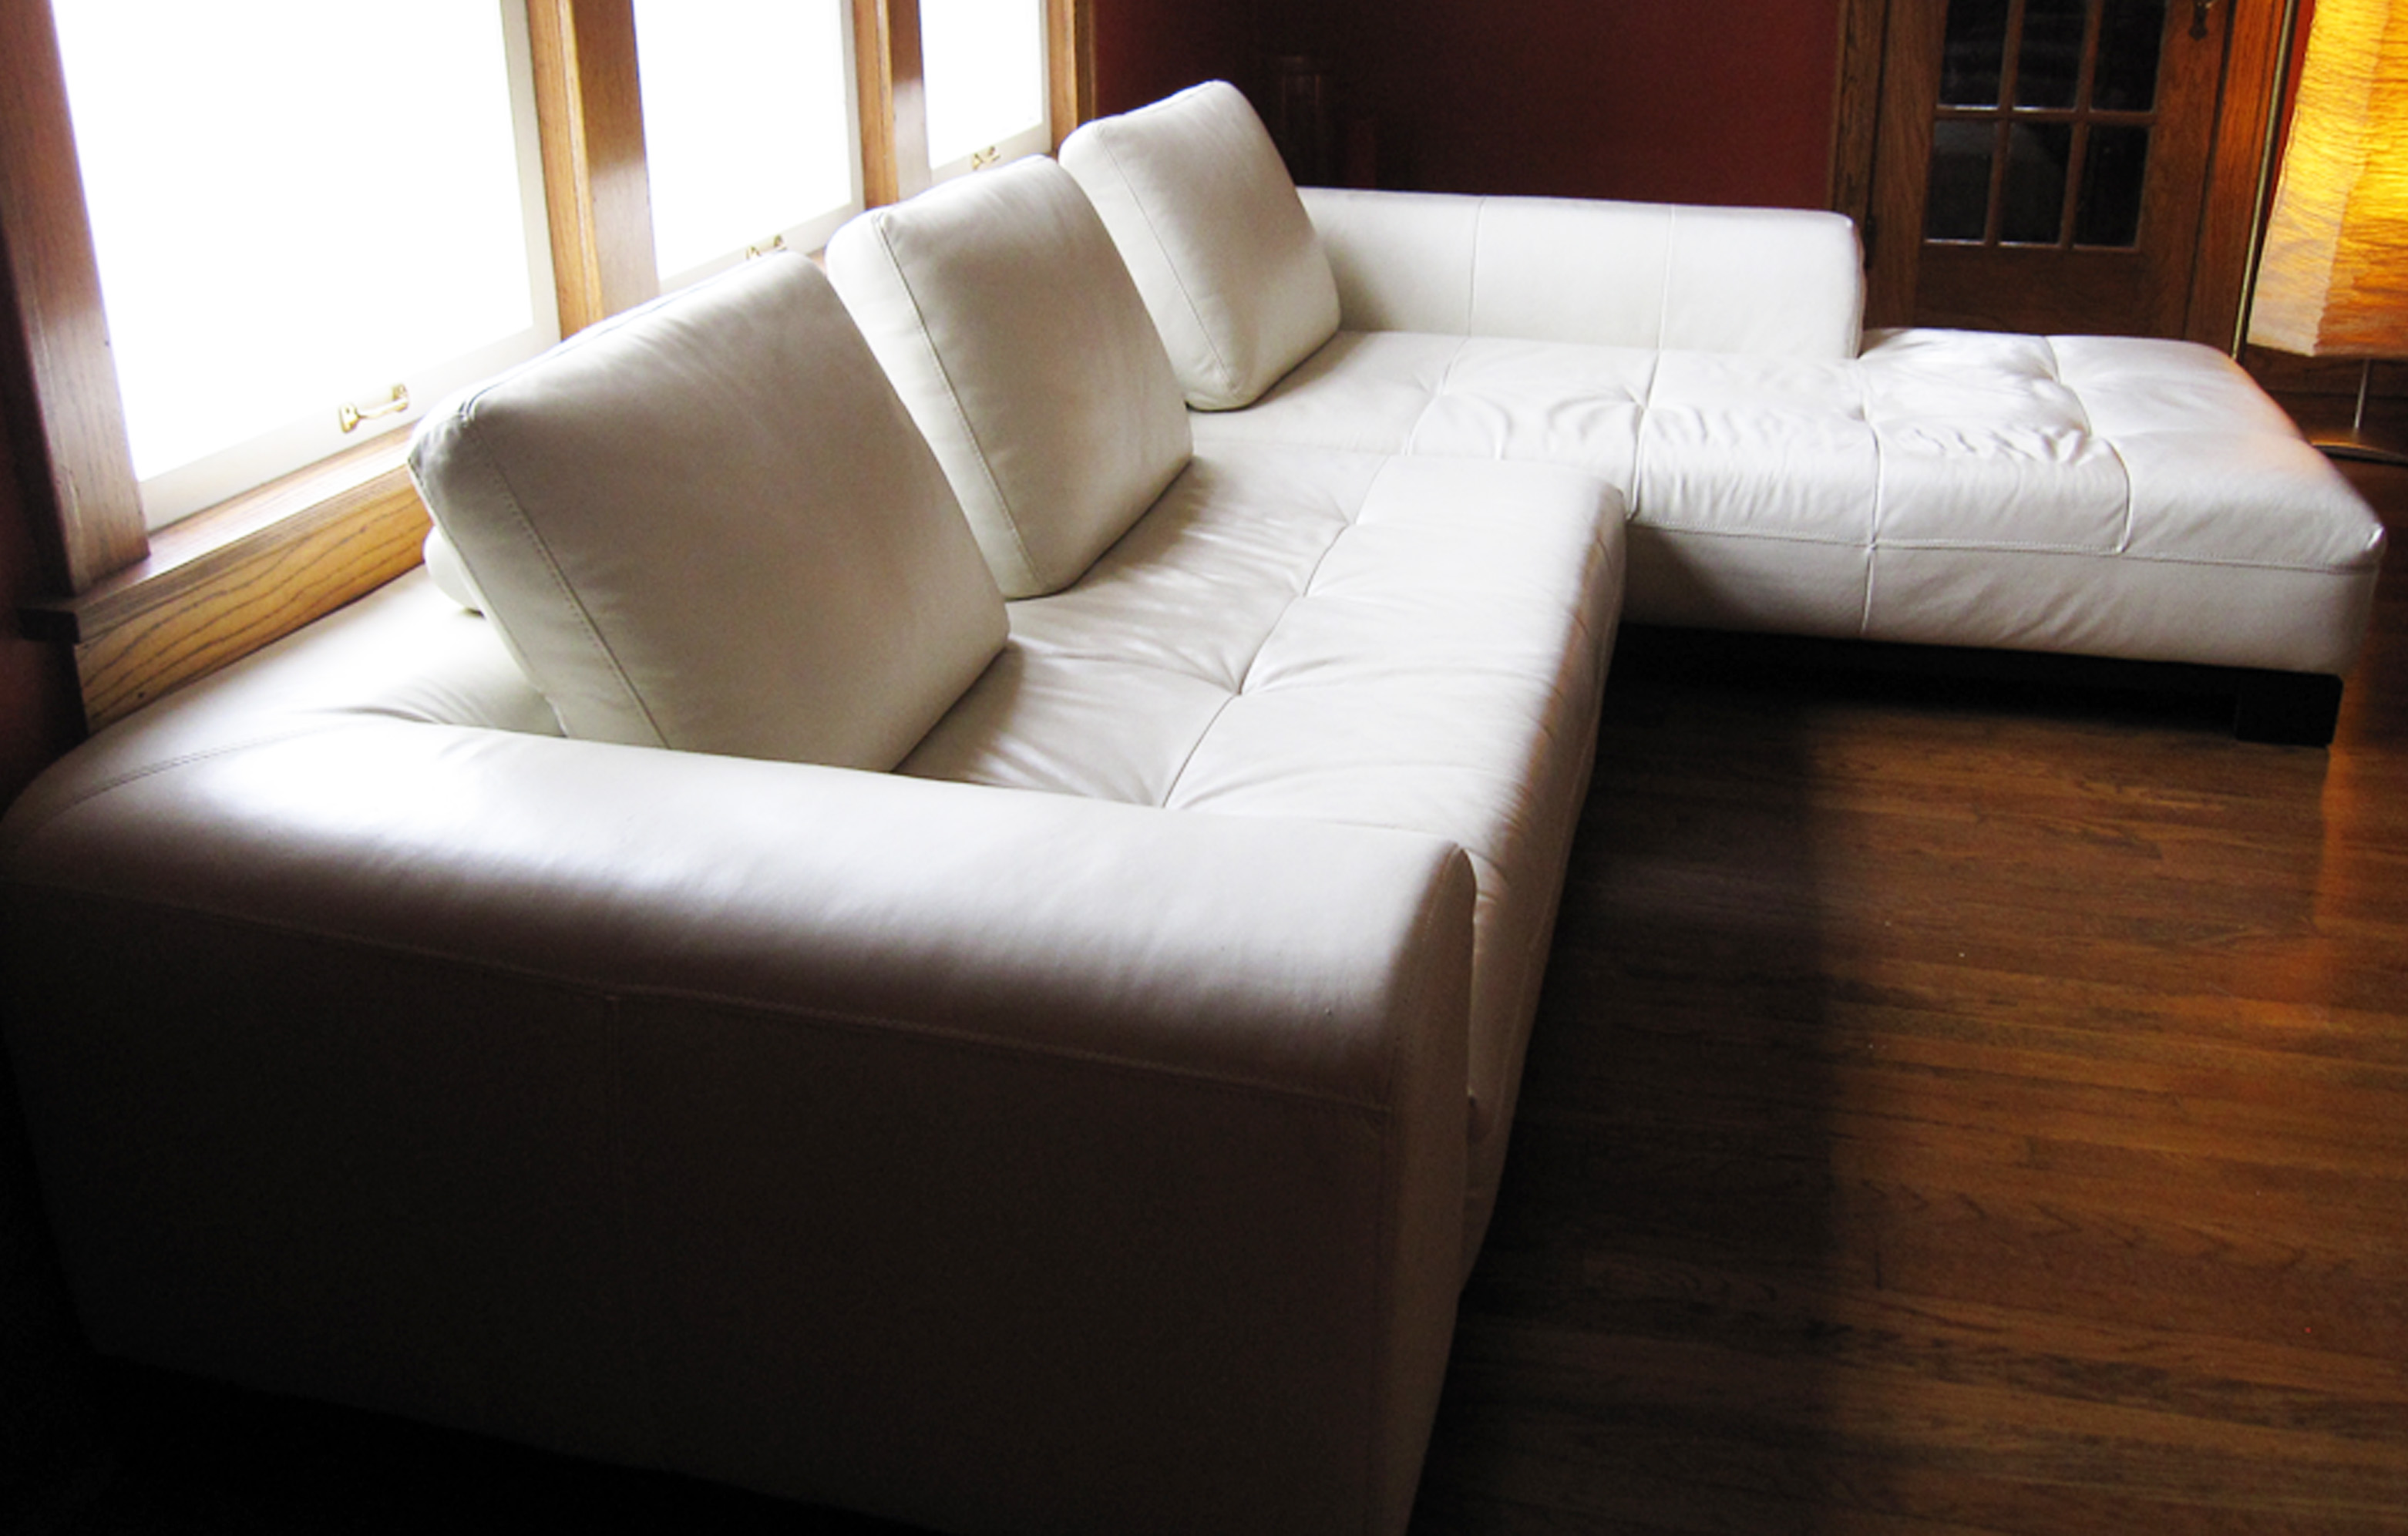 sectional loveseat sofa english roll arm for sale z gallerie white leather | stowhomeforrent